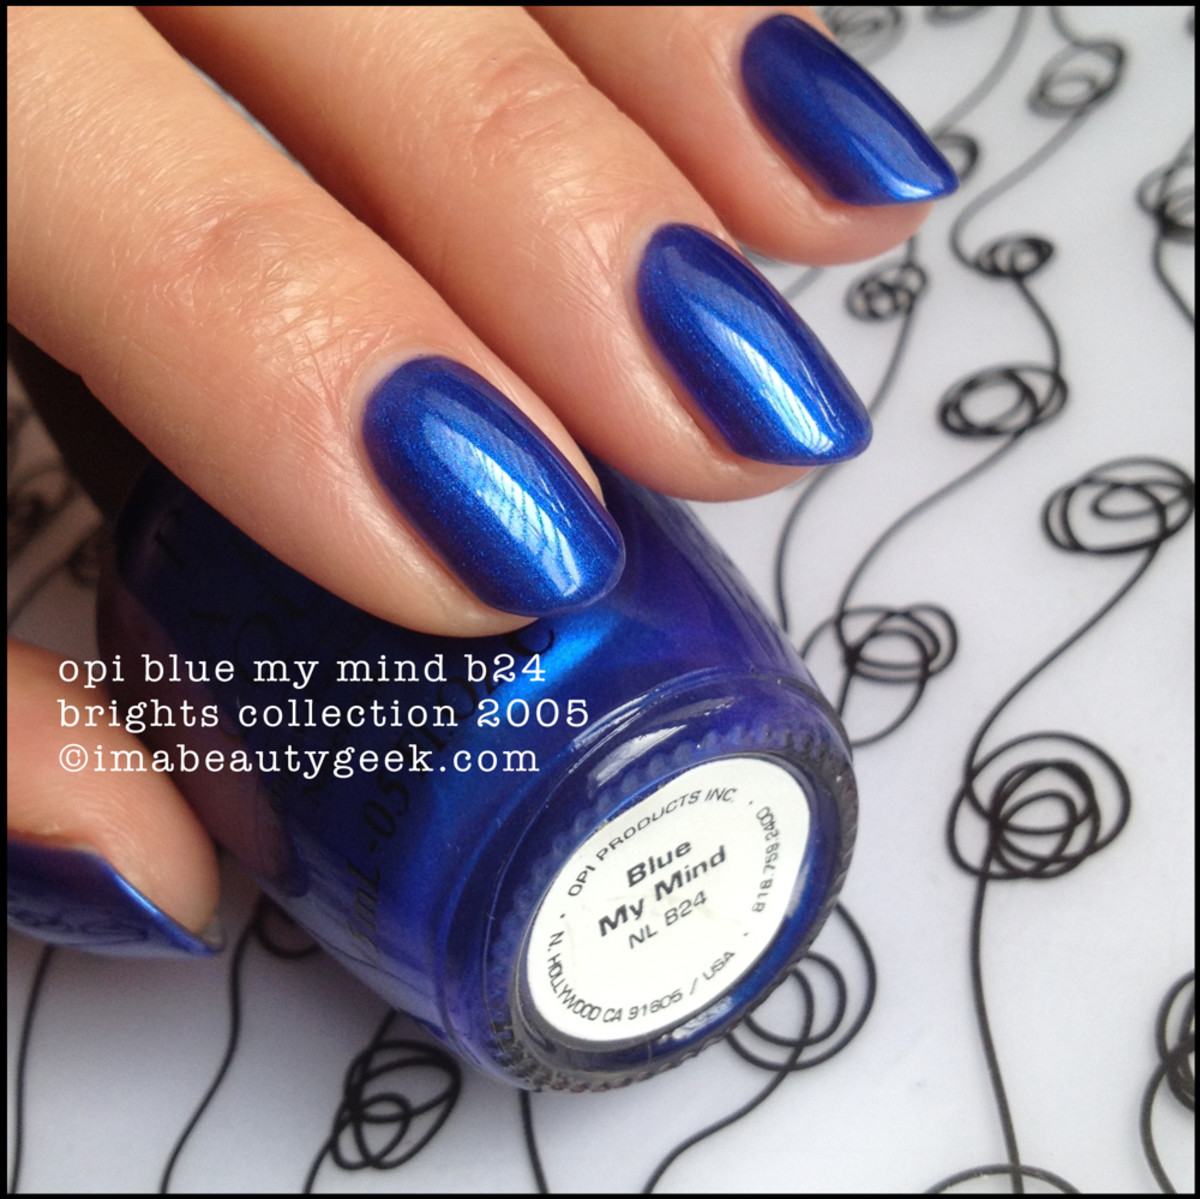 OPI Blue My Mind NL B24 Brights Collection 2005 Black Label